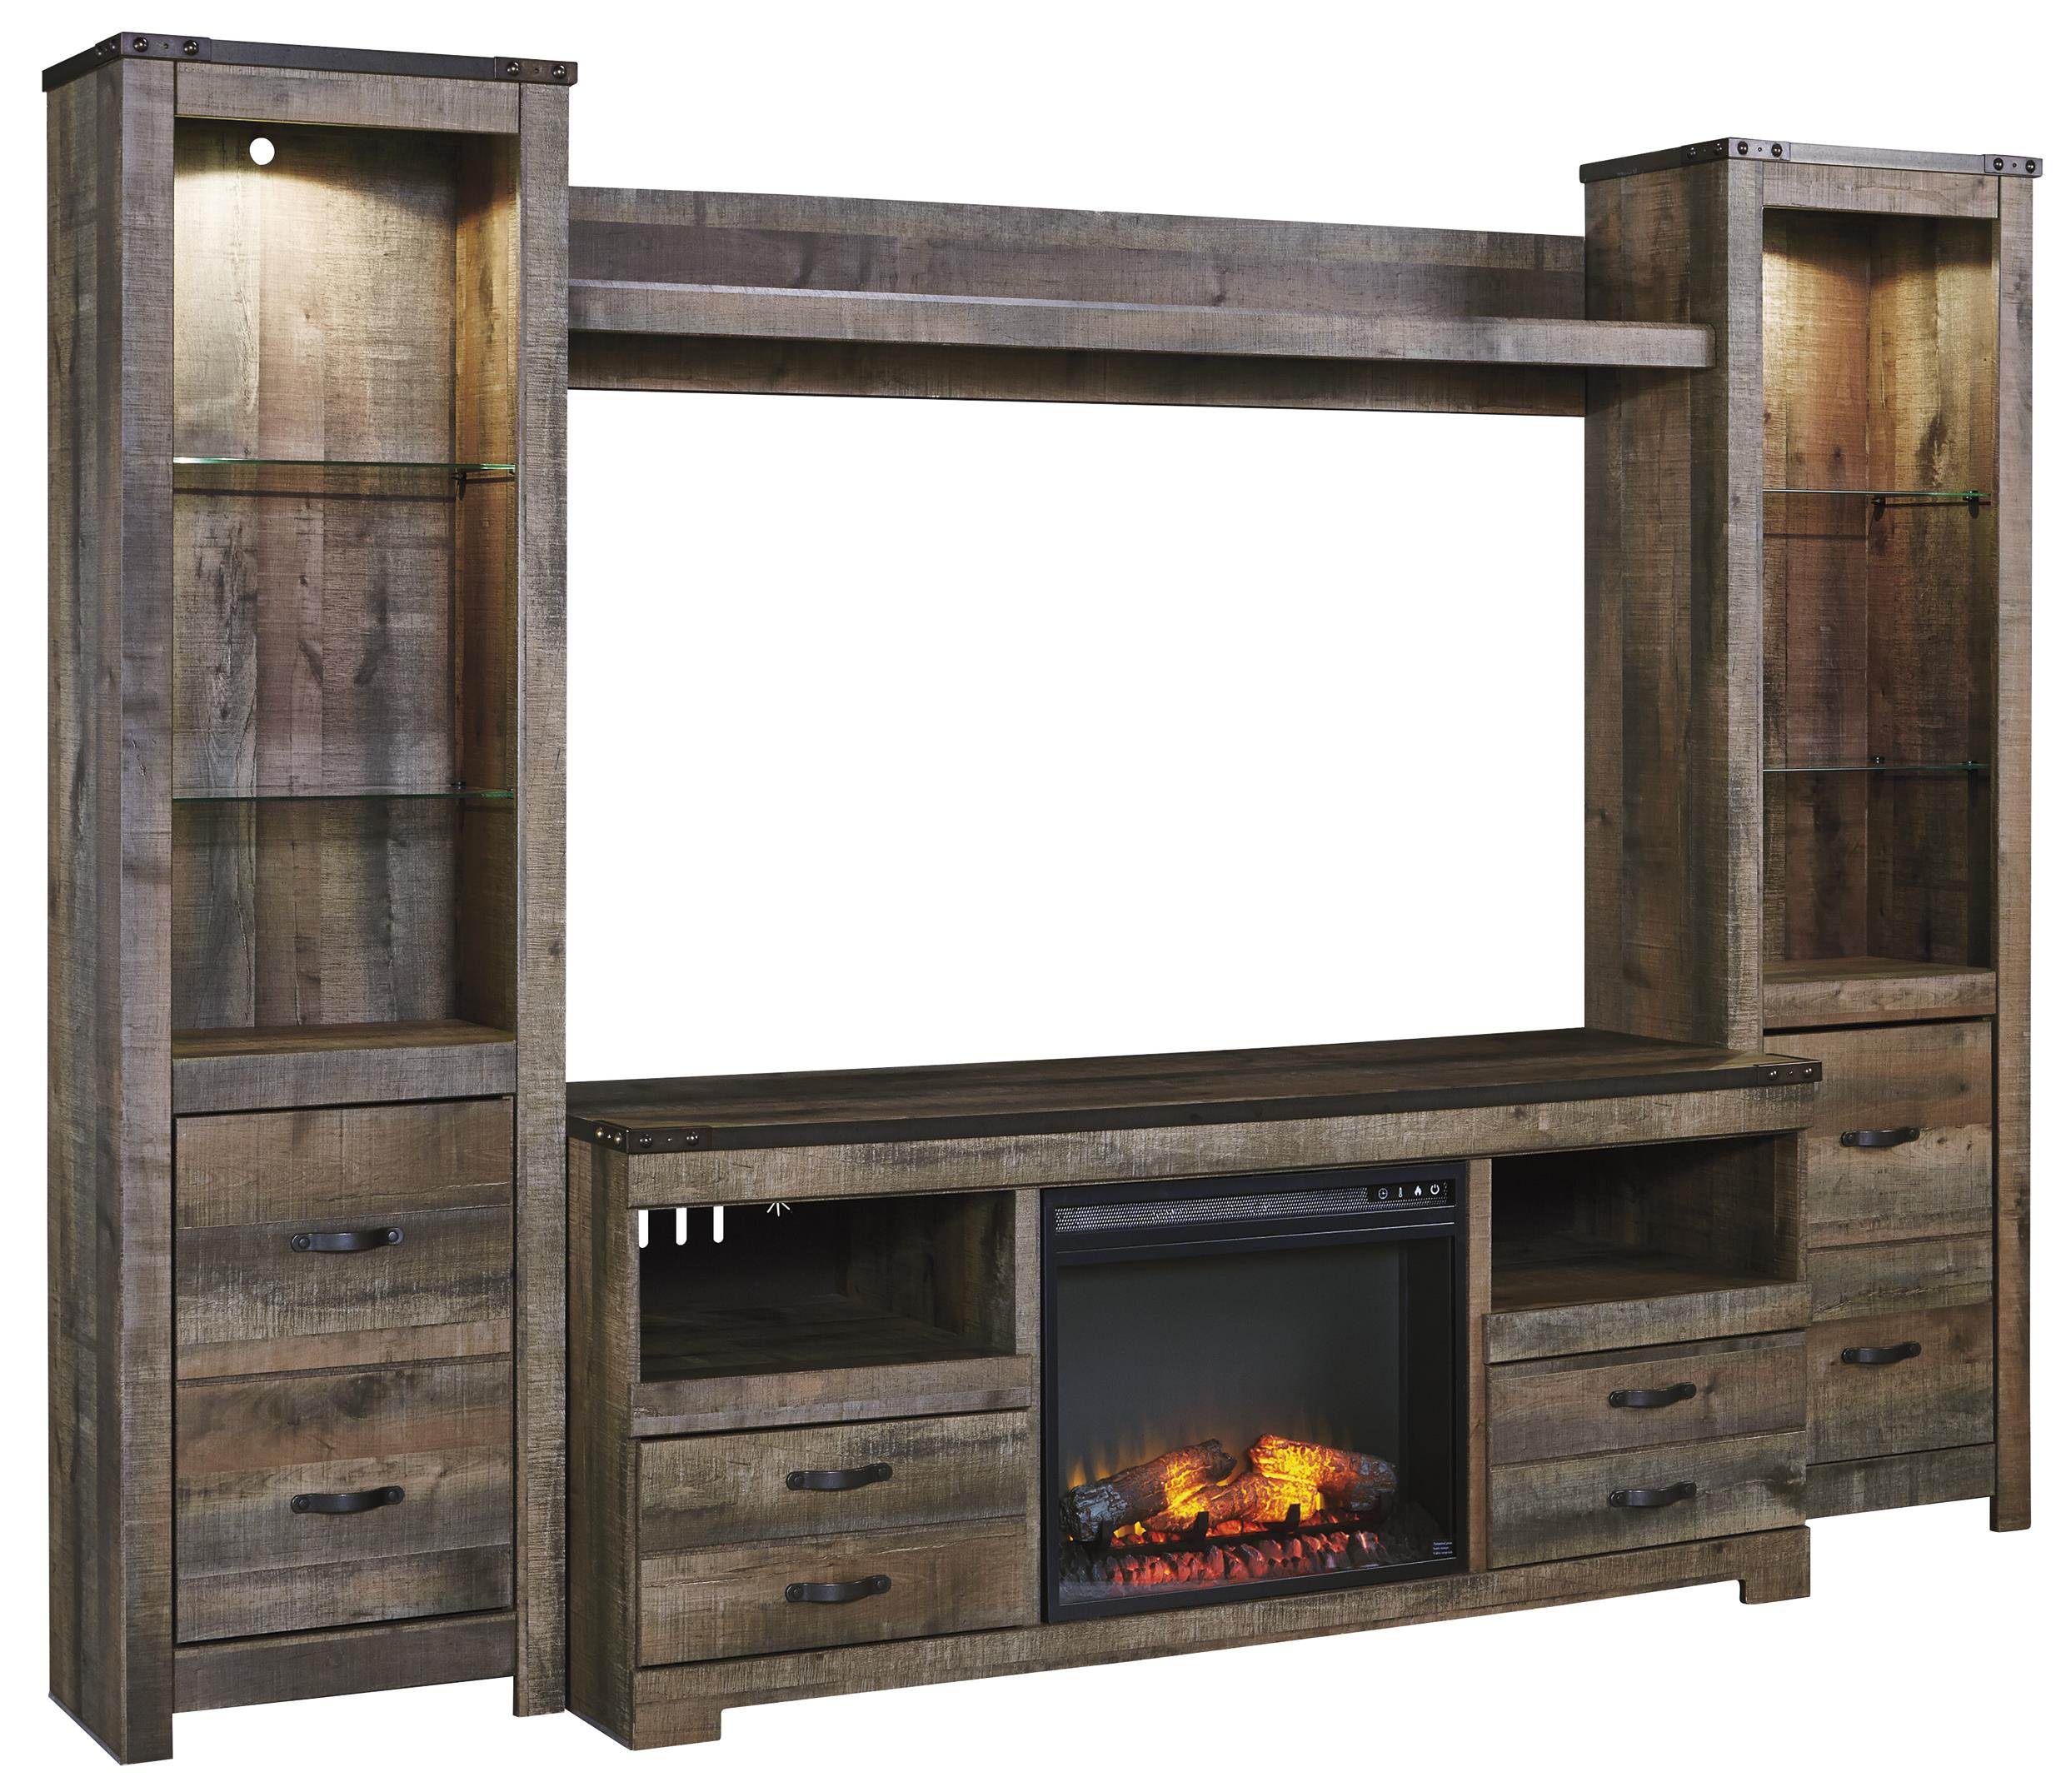 rustic large tv stand w fireplace insert 2 tall piers. Black Bedroom Furniture Sets. Home Design Ideas